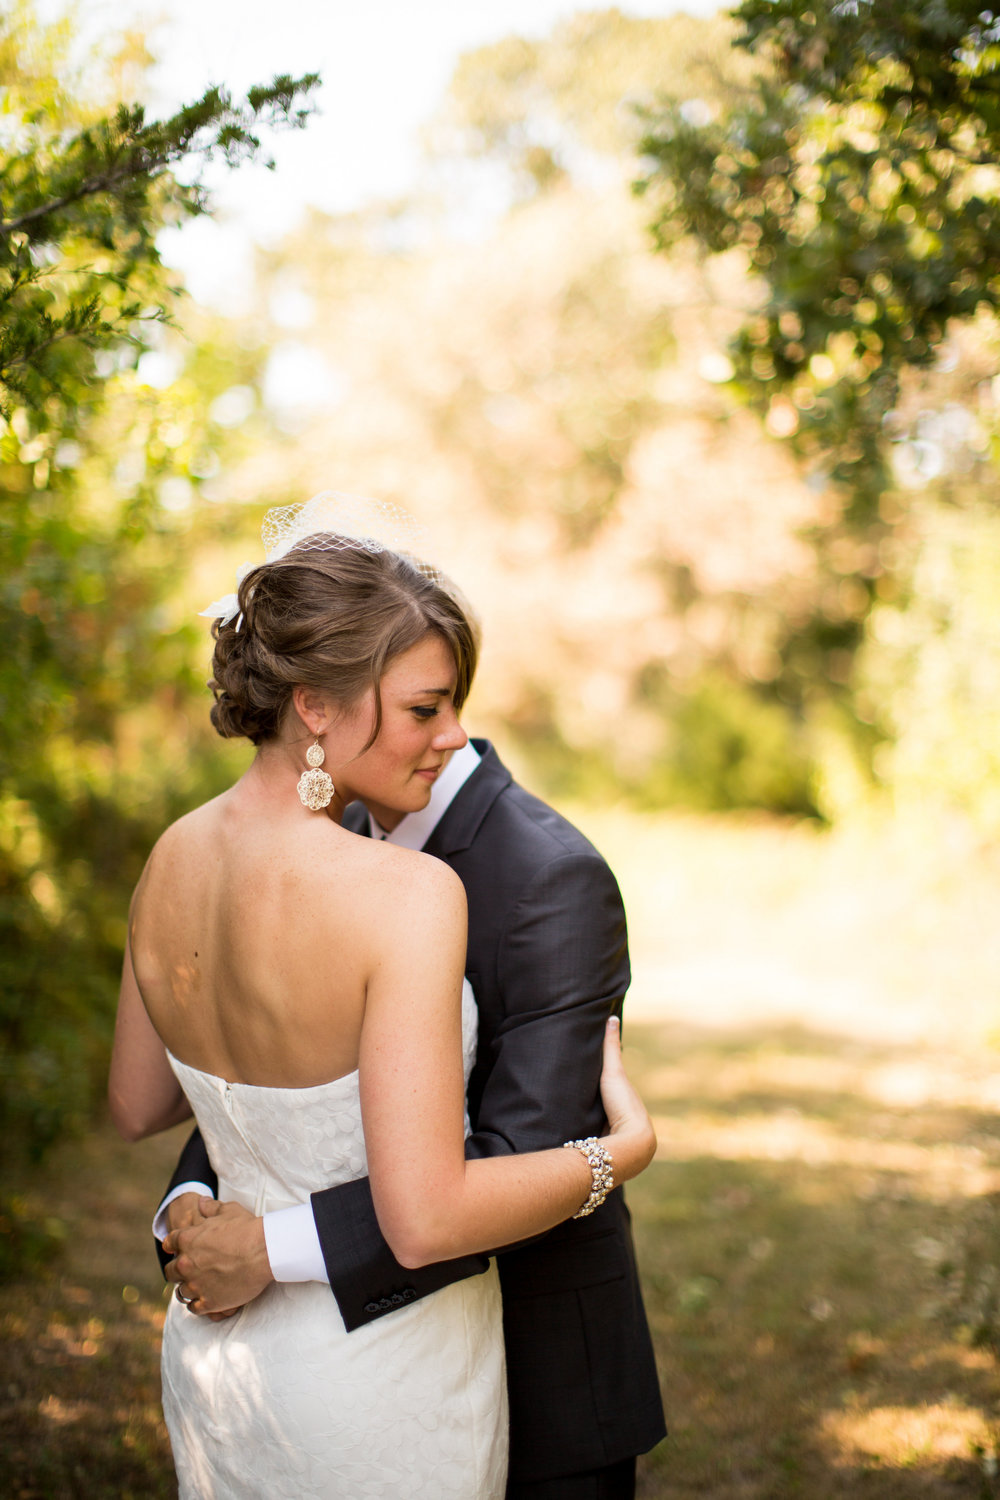 iowa-venue-fort-dodge-farm-outdoor-wedding-rustic-country-lace-strapless-dress-yellow-outdoor-portraits